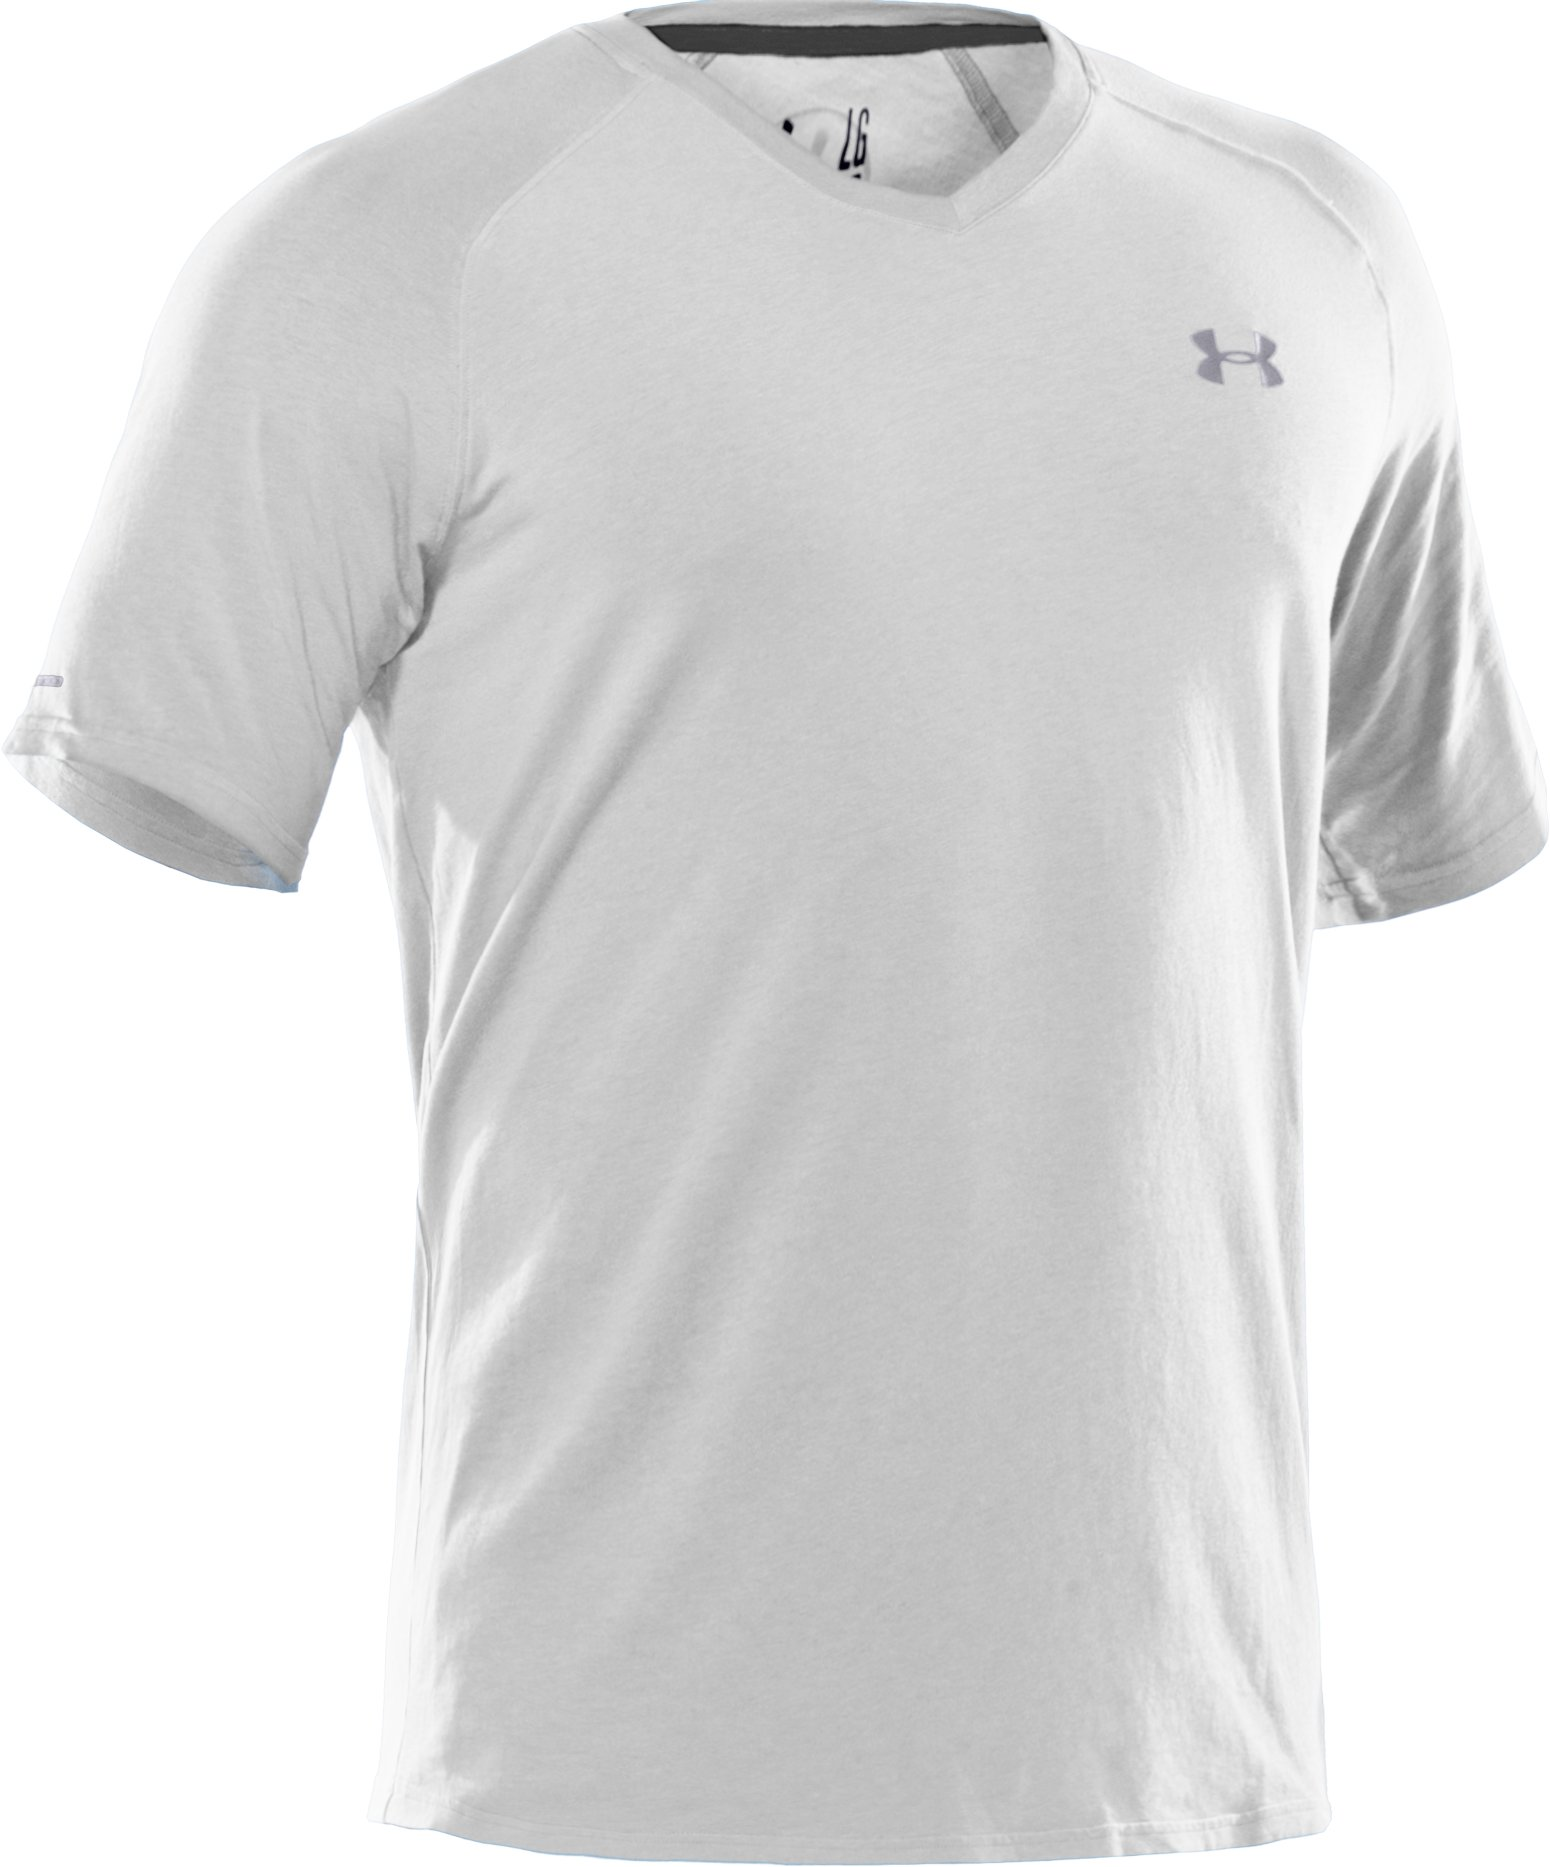 Men's Charged Cotton® V-Neck T-Shirt, White